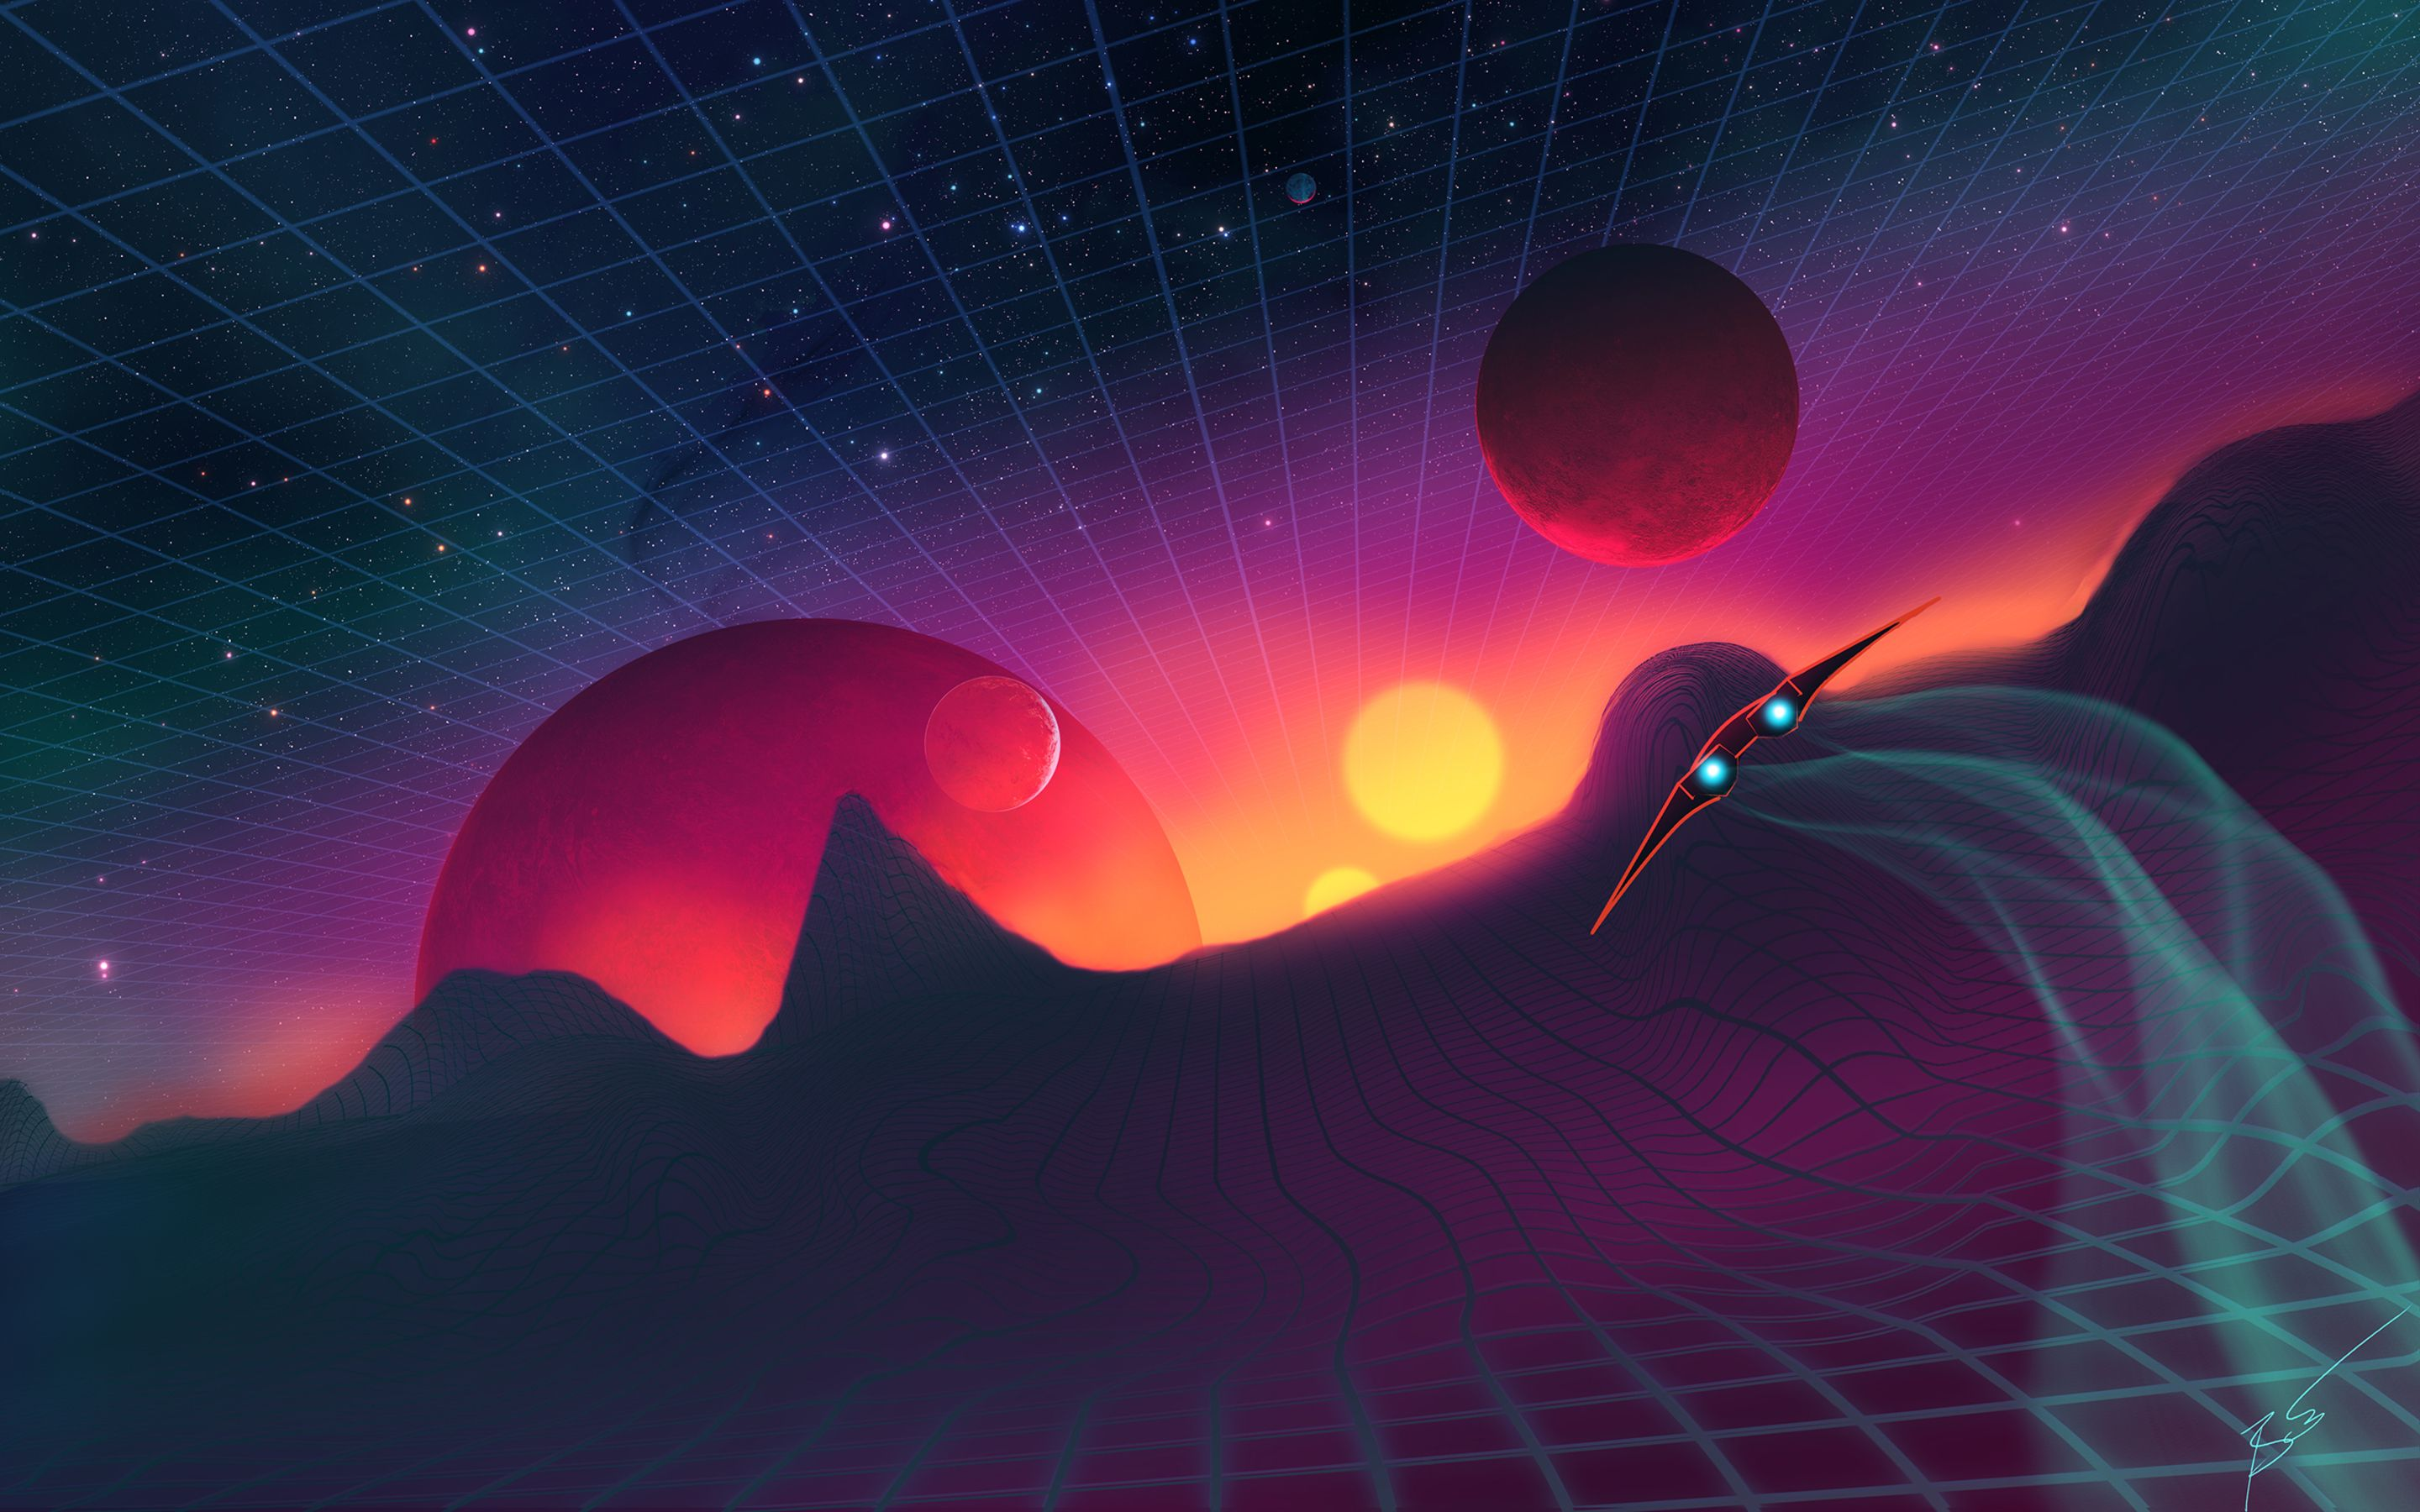 Retro Space Wallpapers Top Free Retro Space Backgrounds